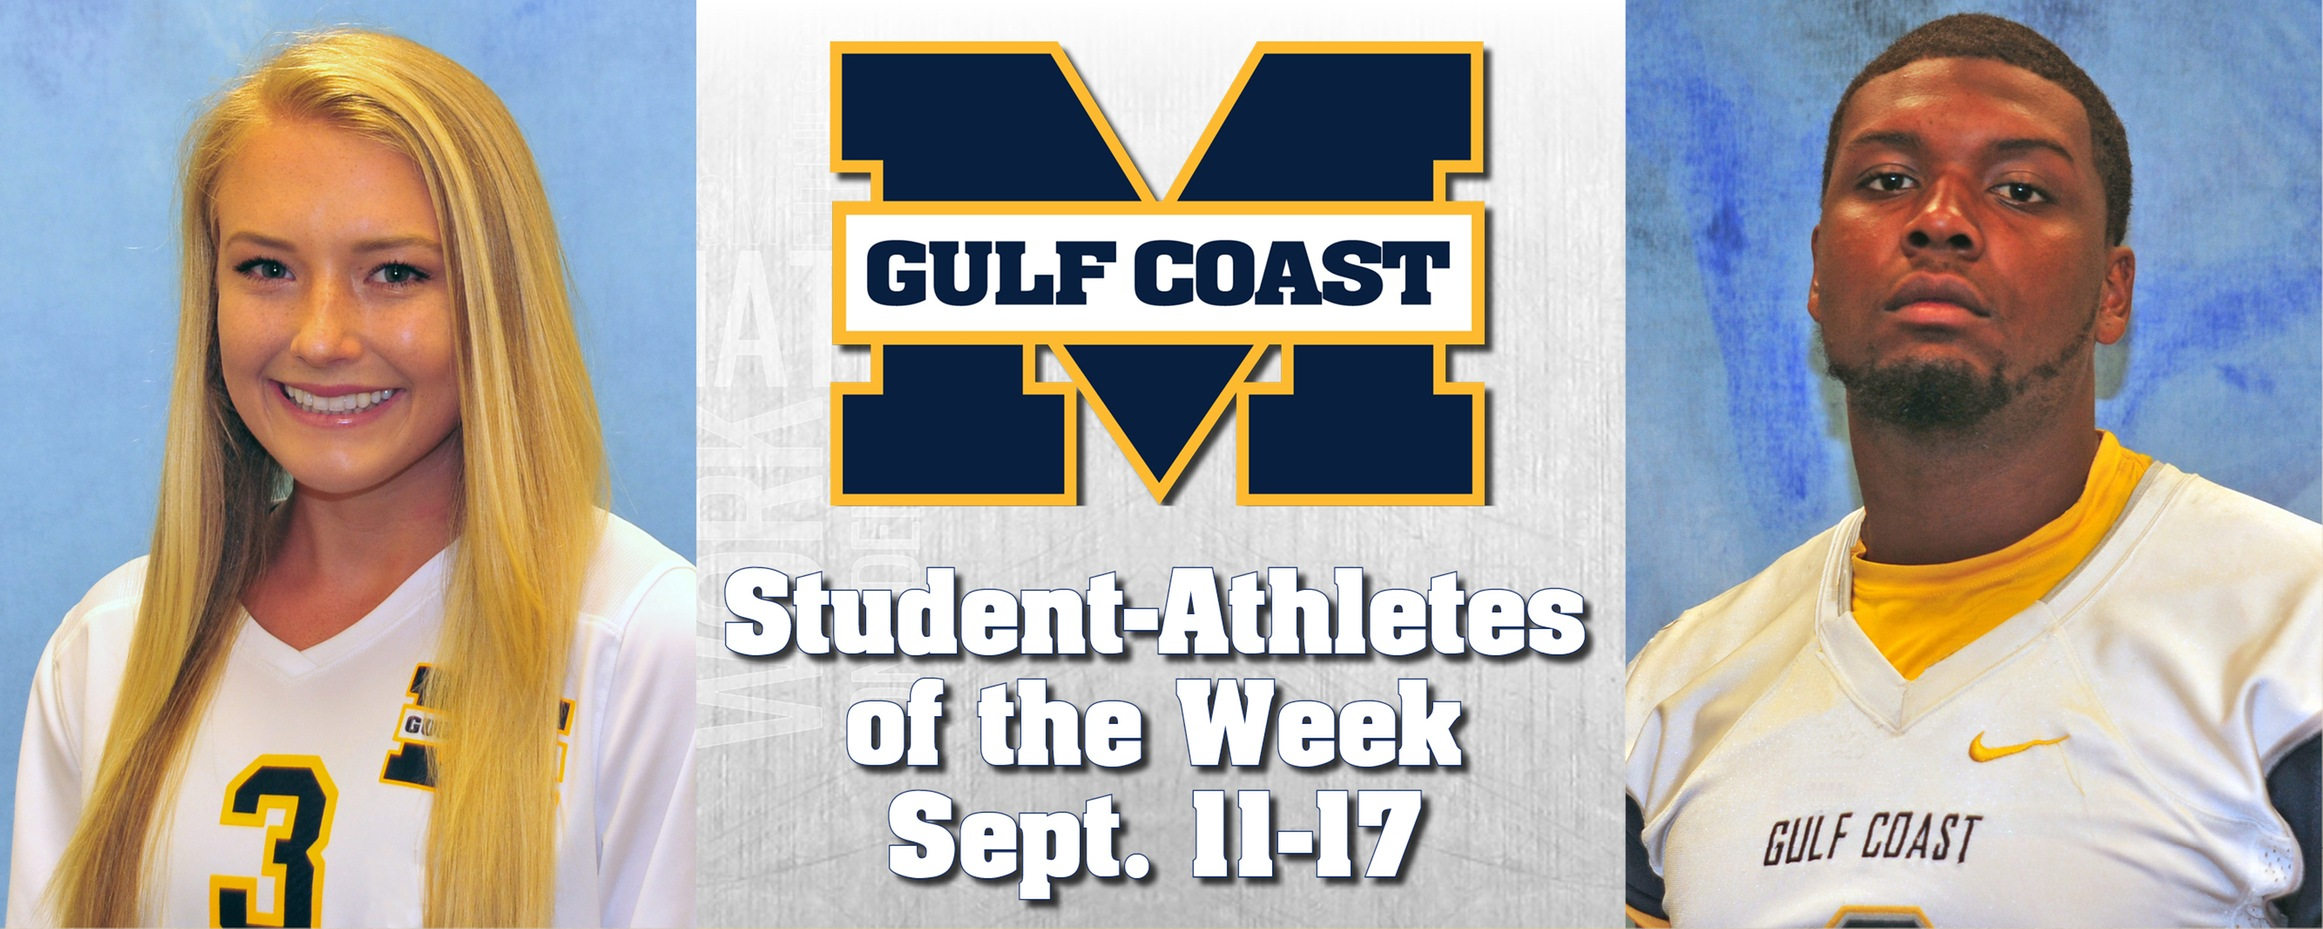 Harwell, Washington named MGCCC Student-Athletes of the Week